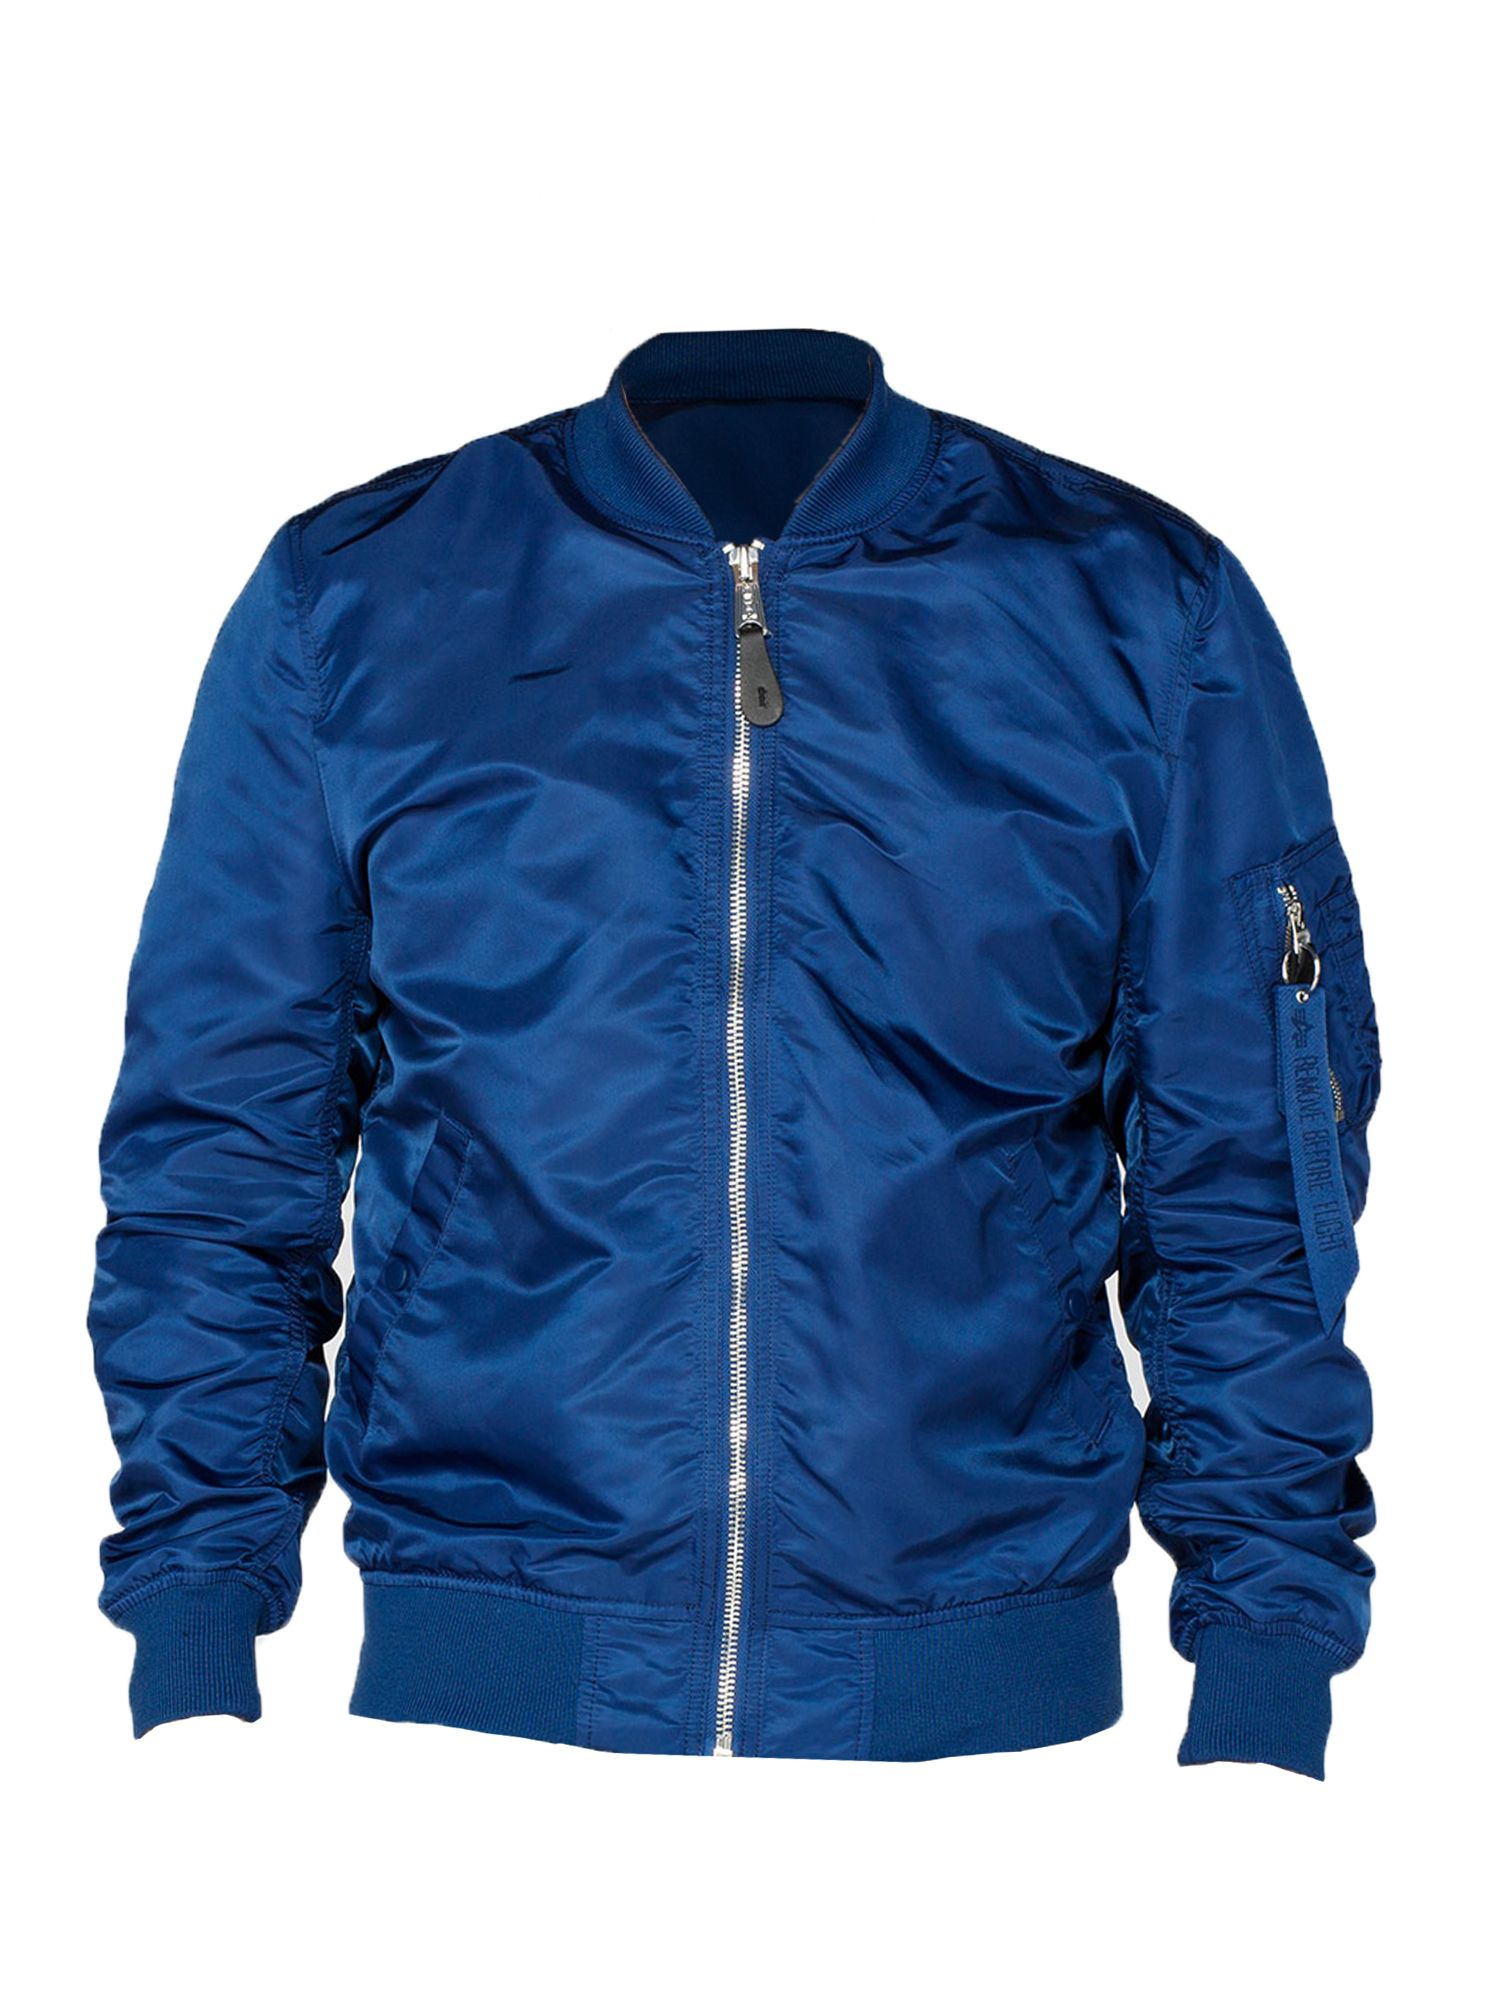 Alpha Industries Men's Alpha Industries Ma-1 vf lw jacket, Ocean